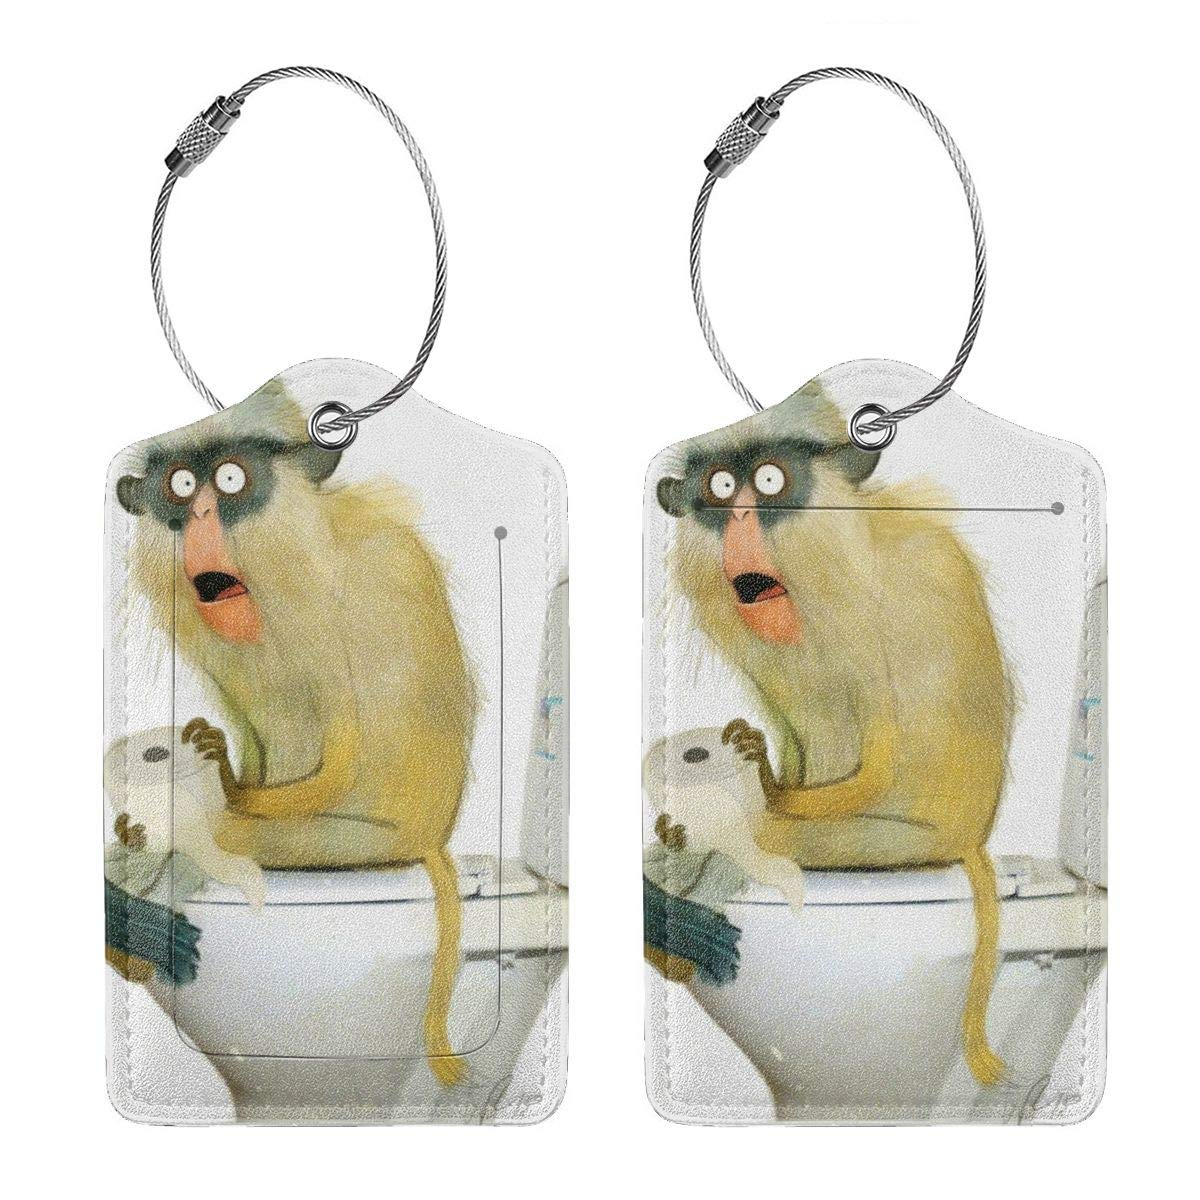 Funny Papio Monkey Sitting On The Toilet Luggage Tag Label Travel Bag Label With Privacy Cover Luggage Tag Leather Personalized Suitcase Tag Travel Accessories